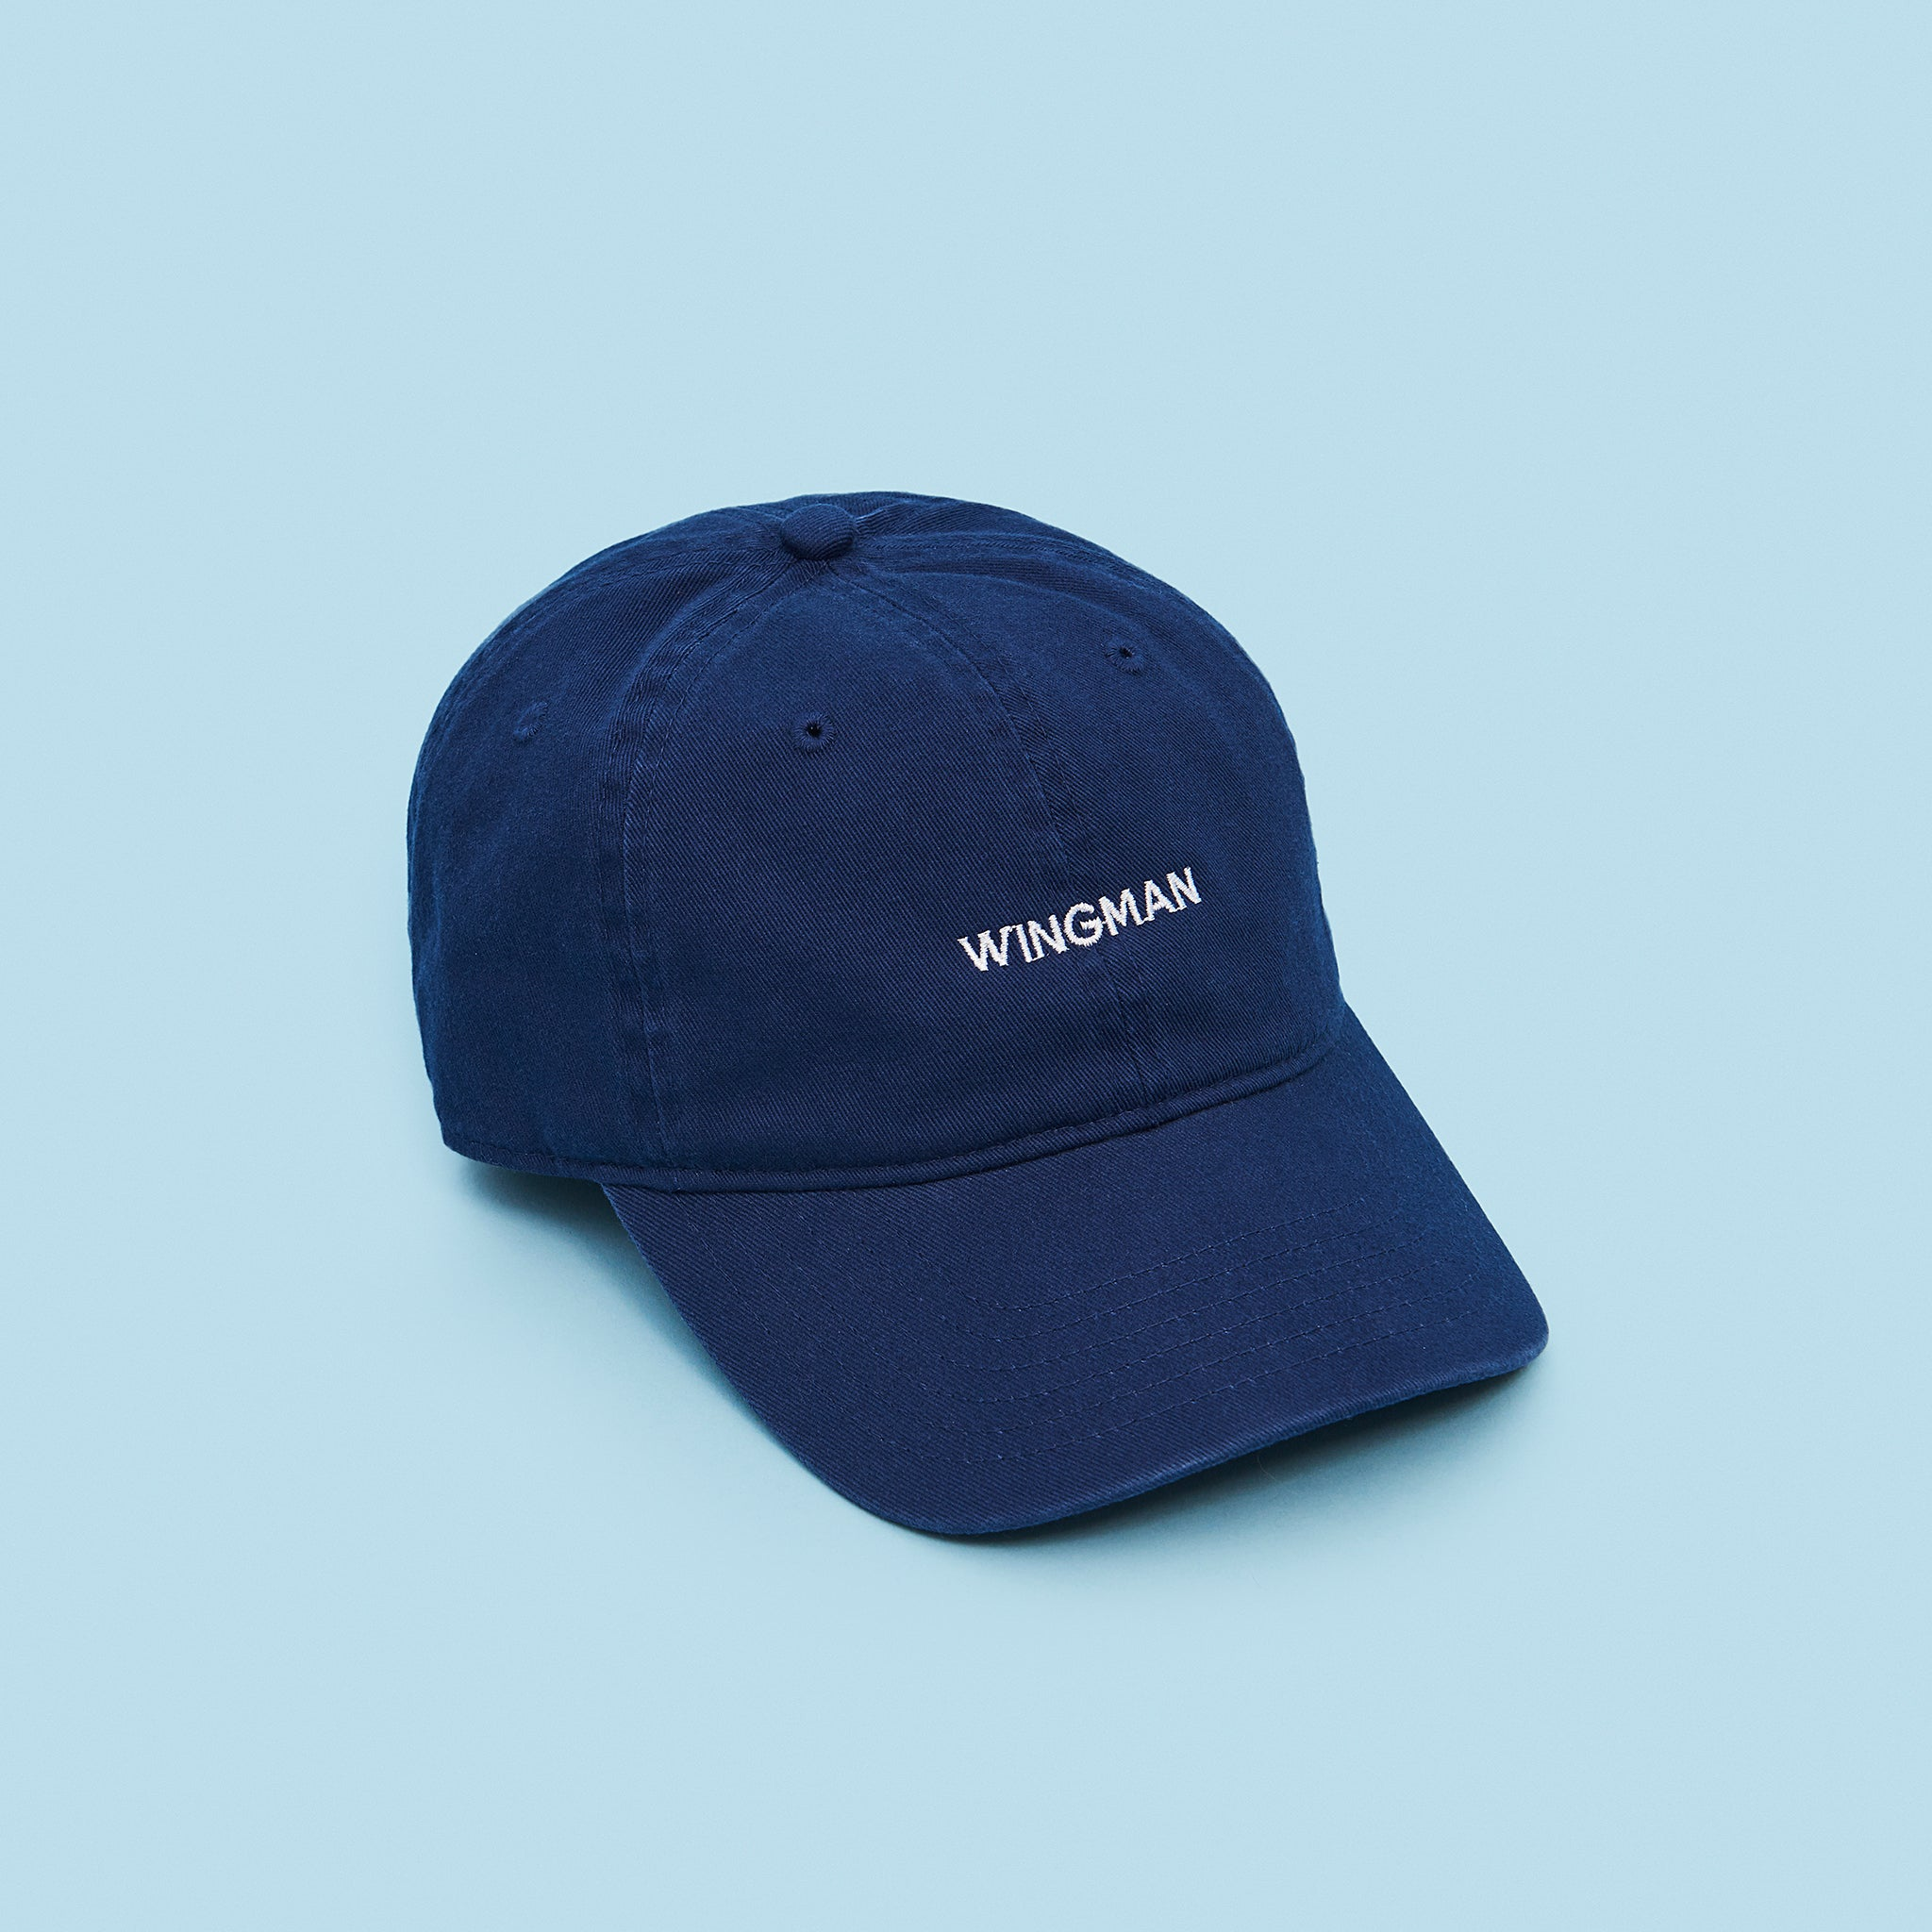 Wingman Hat - Navy